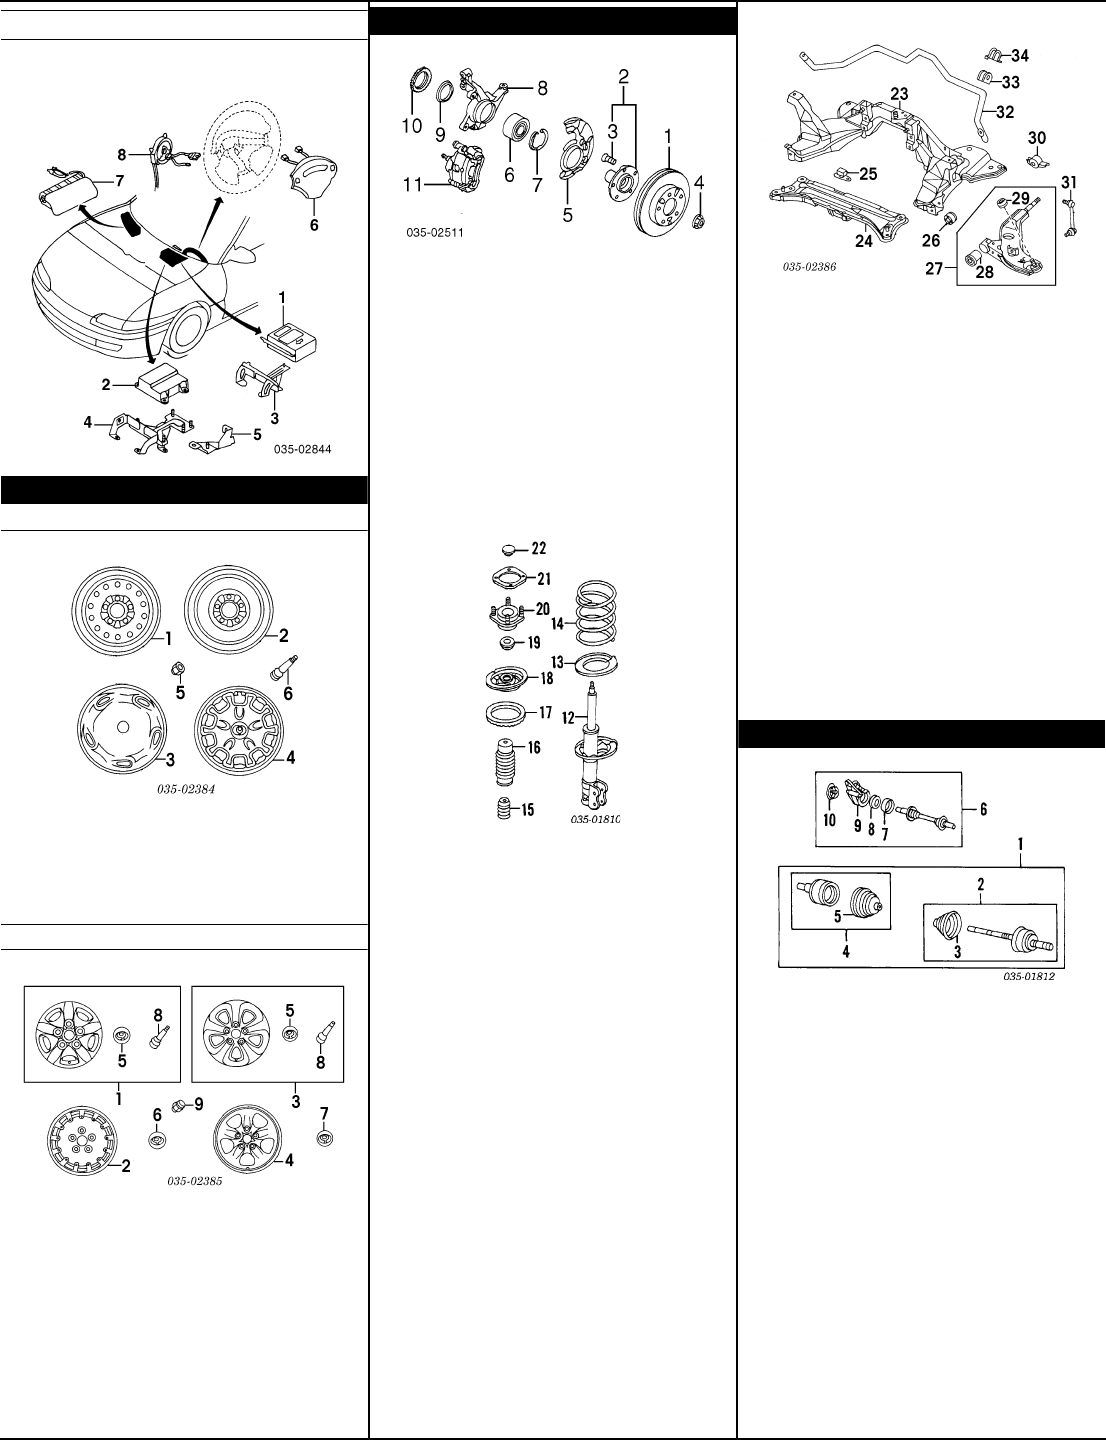 1993 Mazda Mx6 Parts Fuse Box Diagram Misc Documents Catalogue Pdf 1106x1440